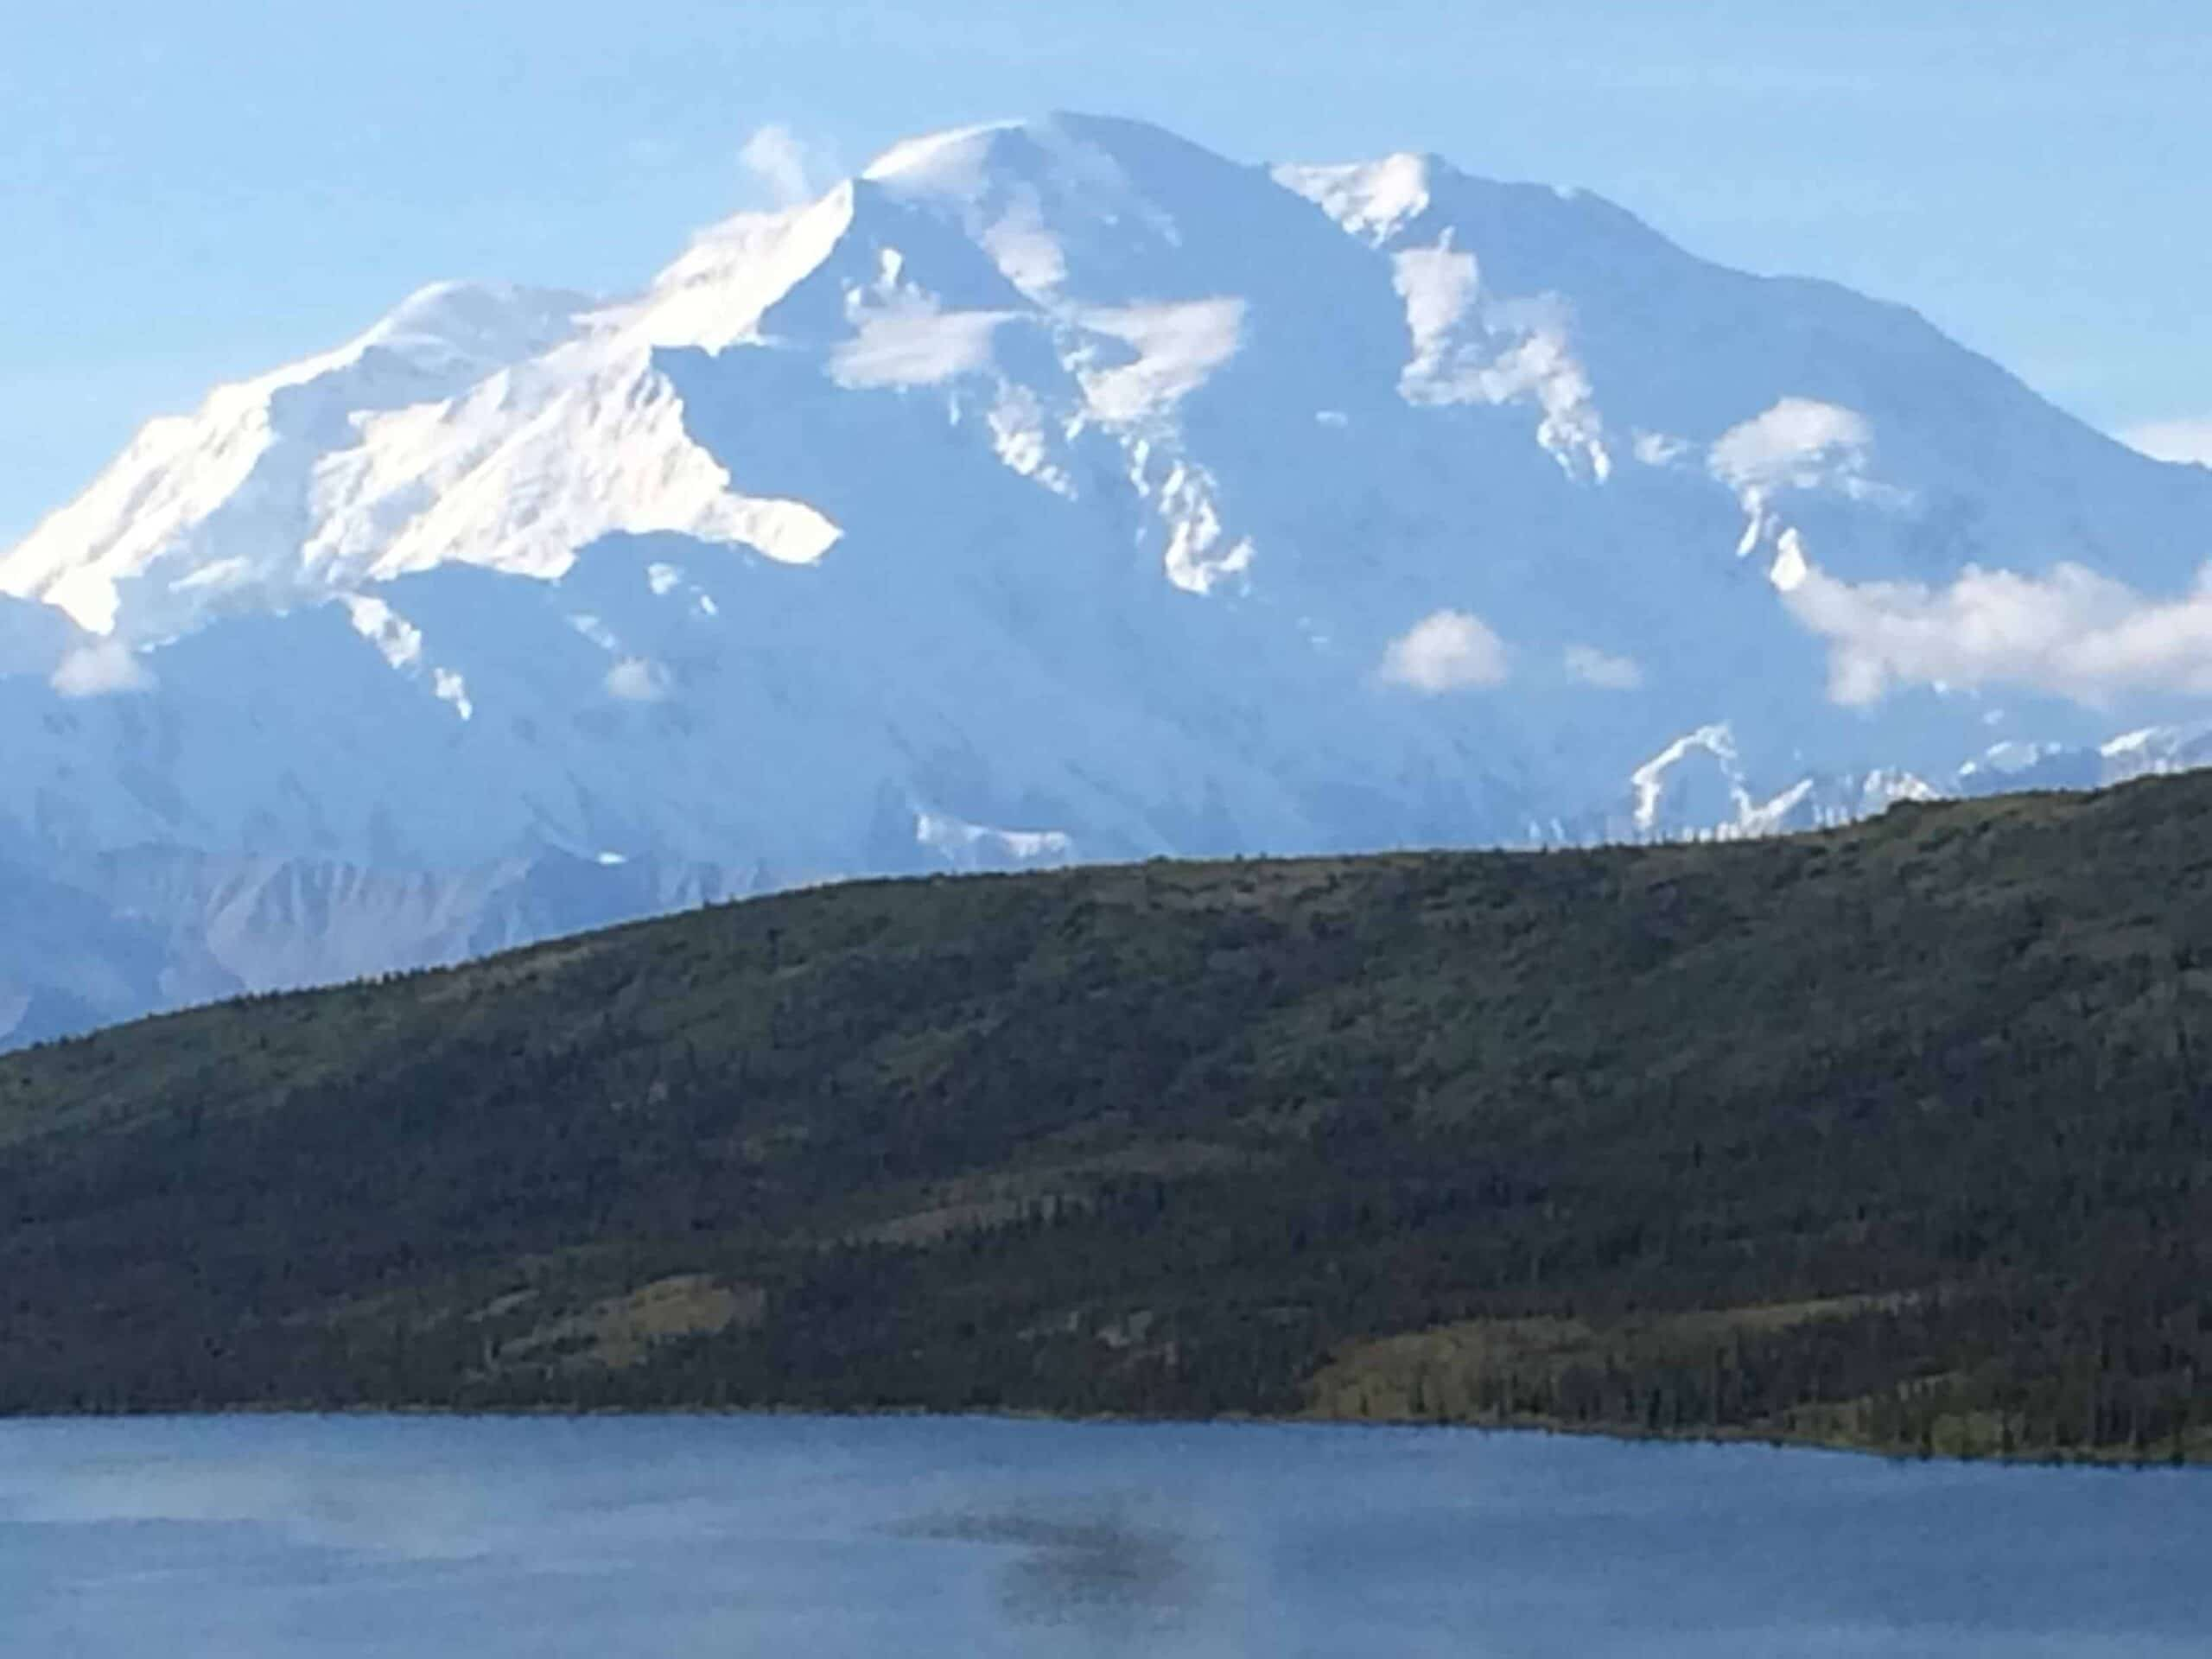 Snow-covered Denali mountain on a beautiful sunny day.